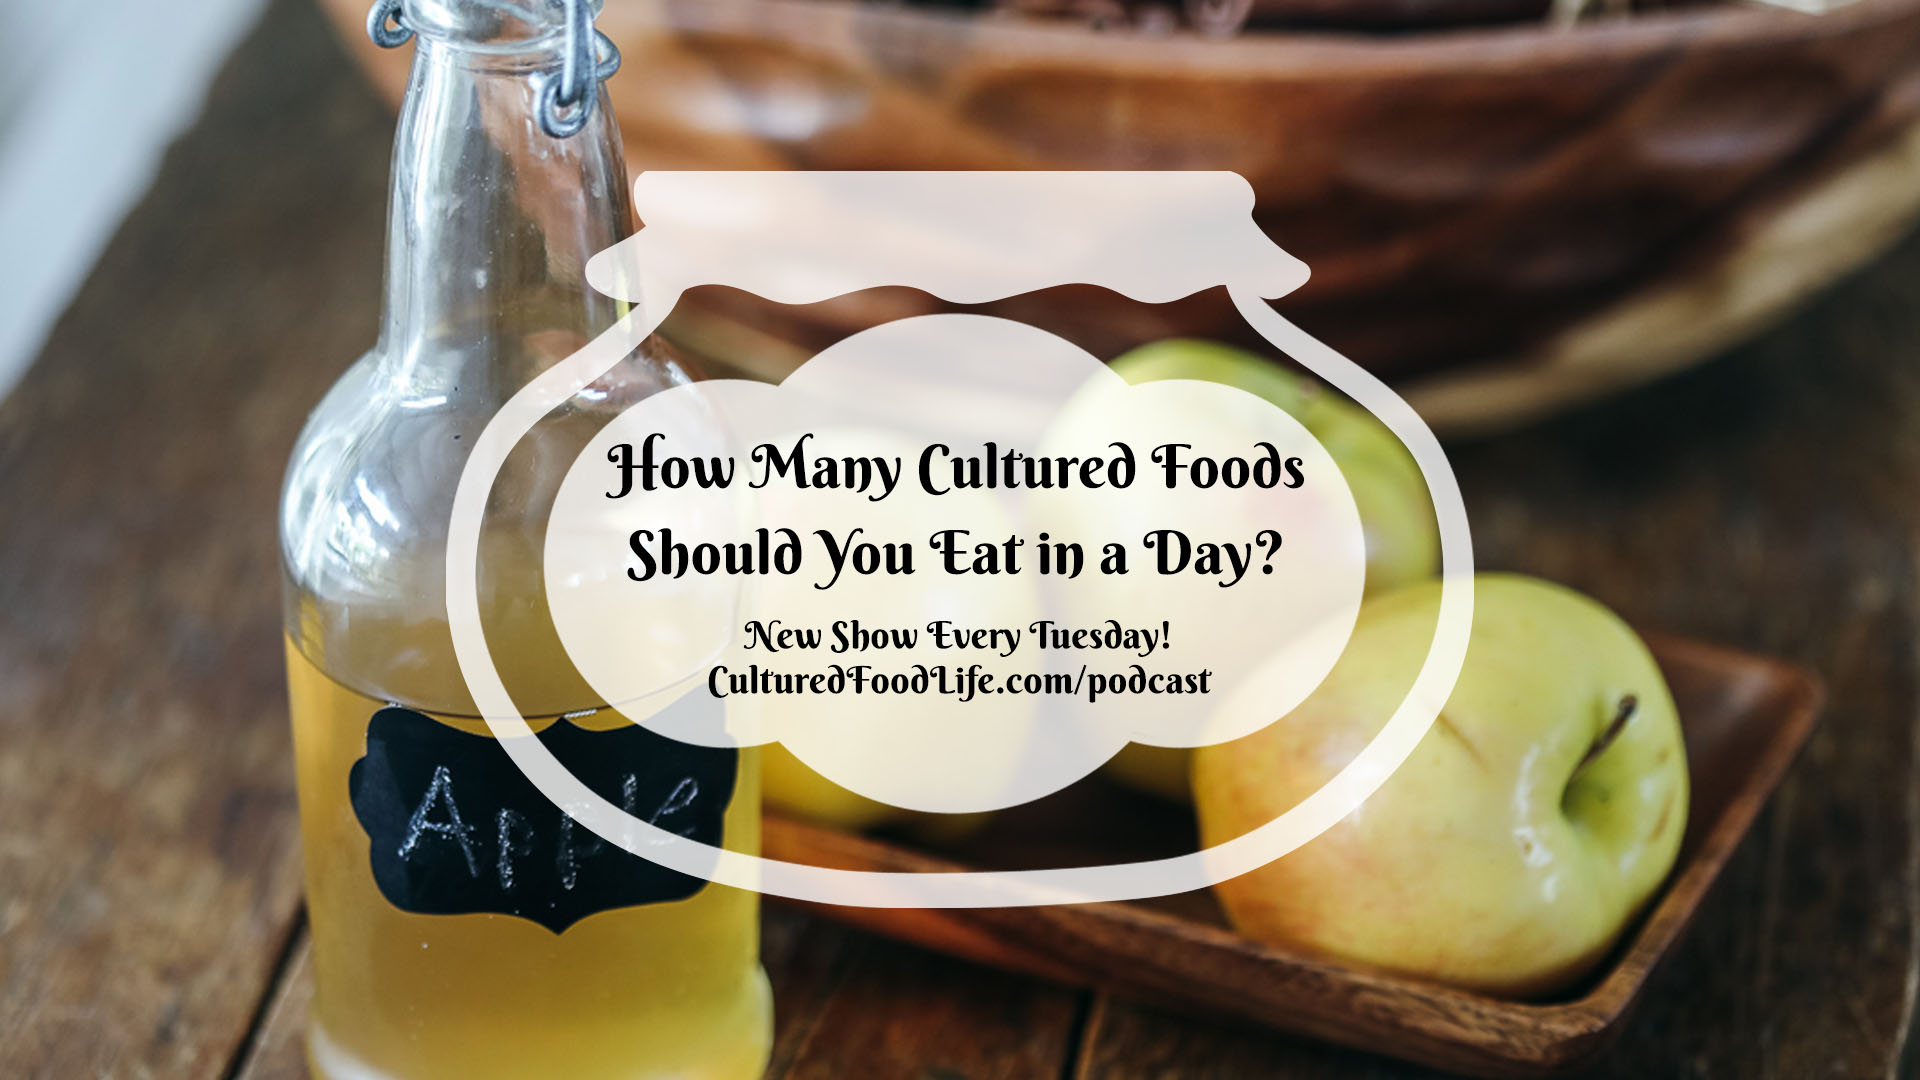 How Many Cultured Foods Should You Eat in a Day Full